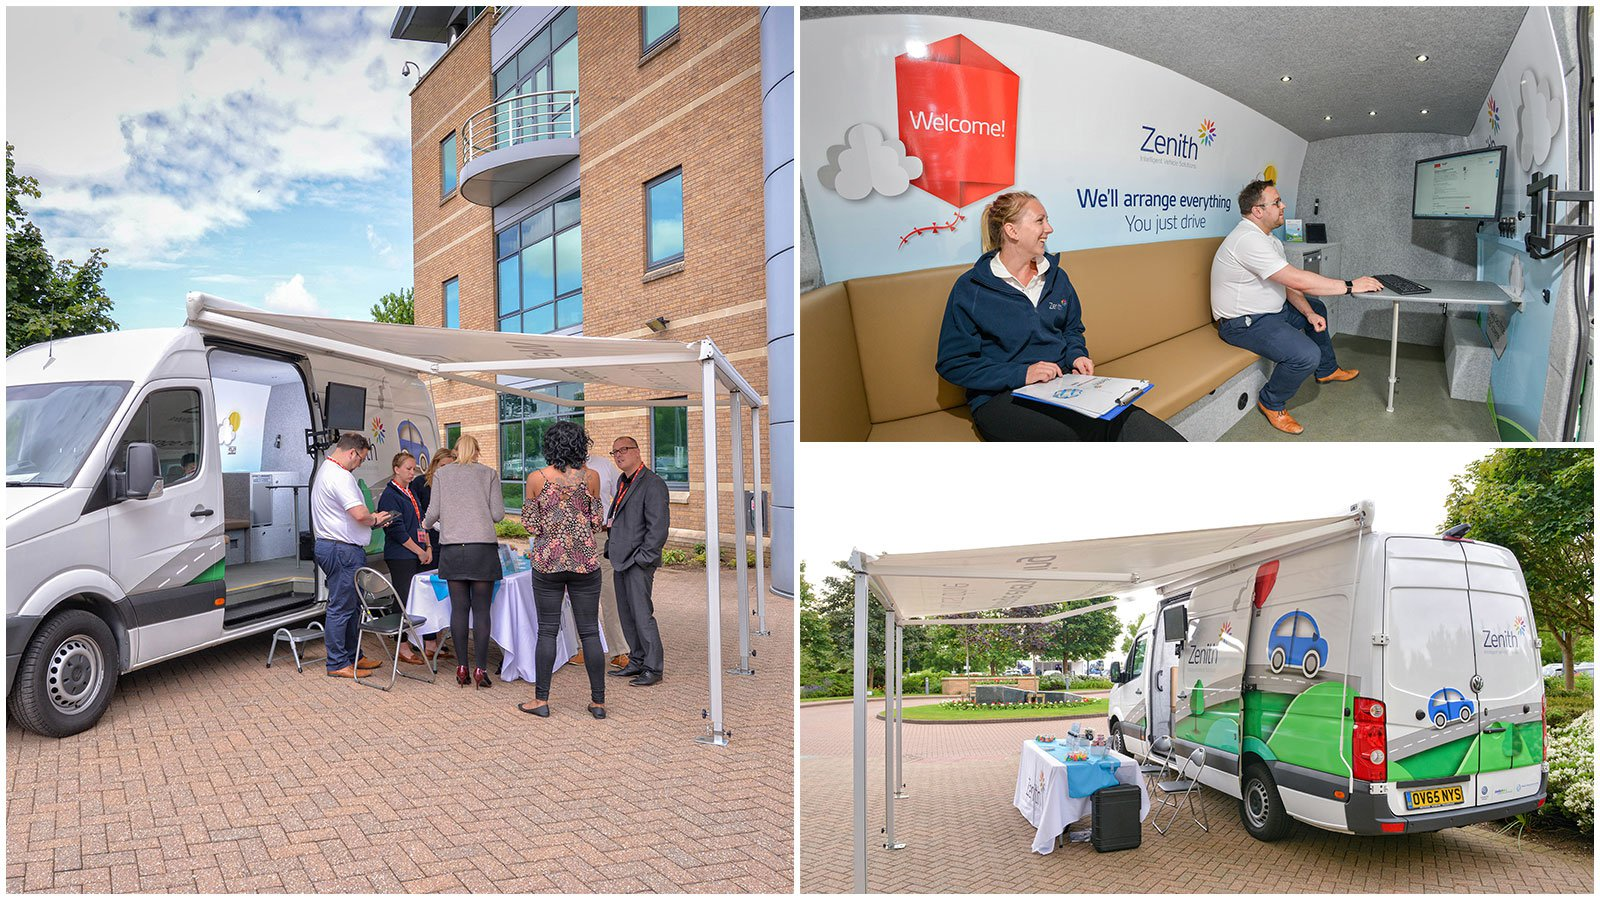 One business converted a Volkswagen Crafter into a mobile events and meeting space